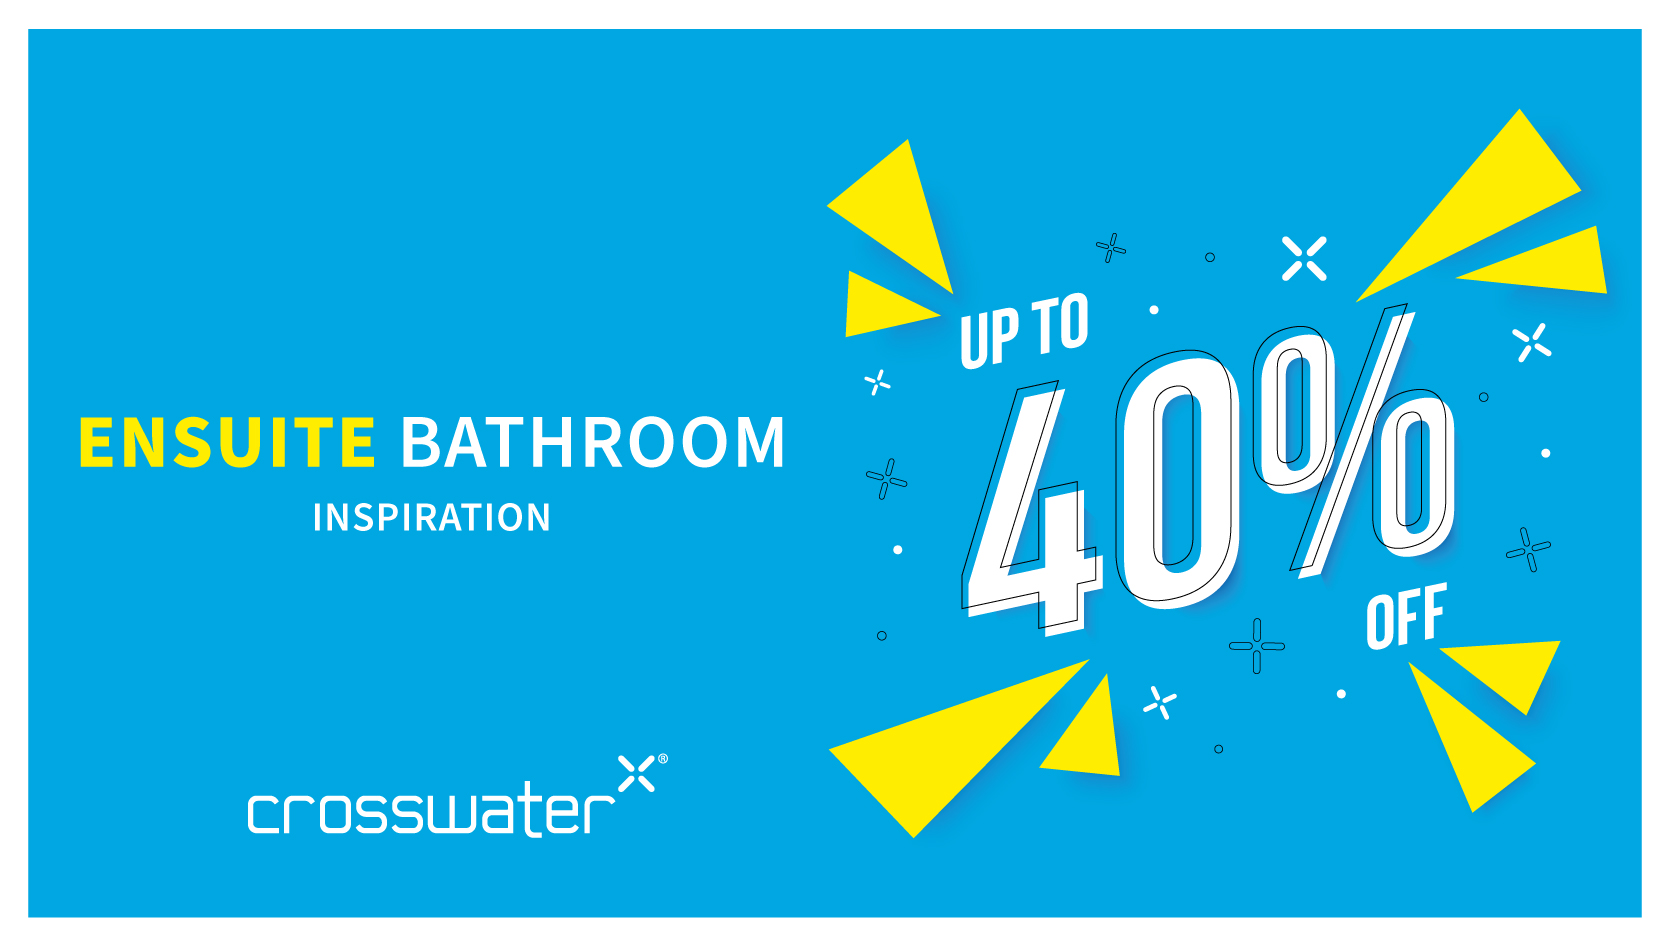 Ensuite Bathroom up to 40 % off Banner